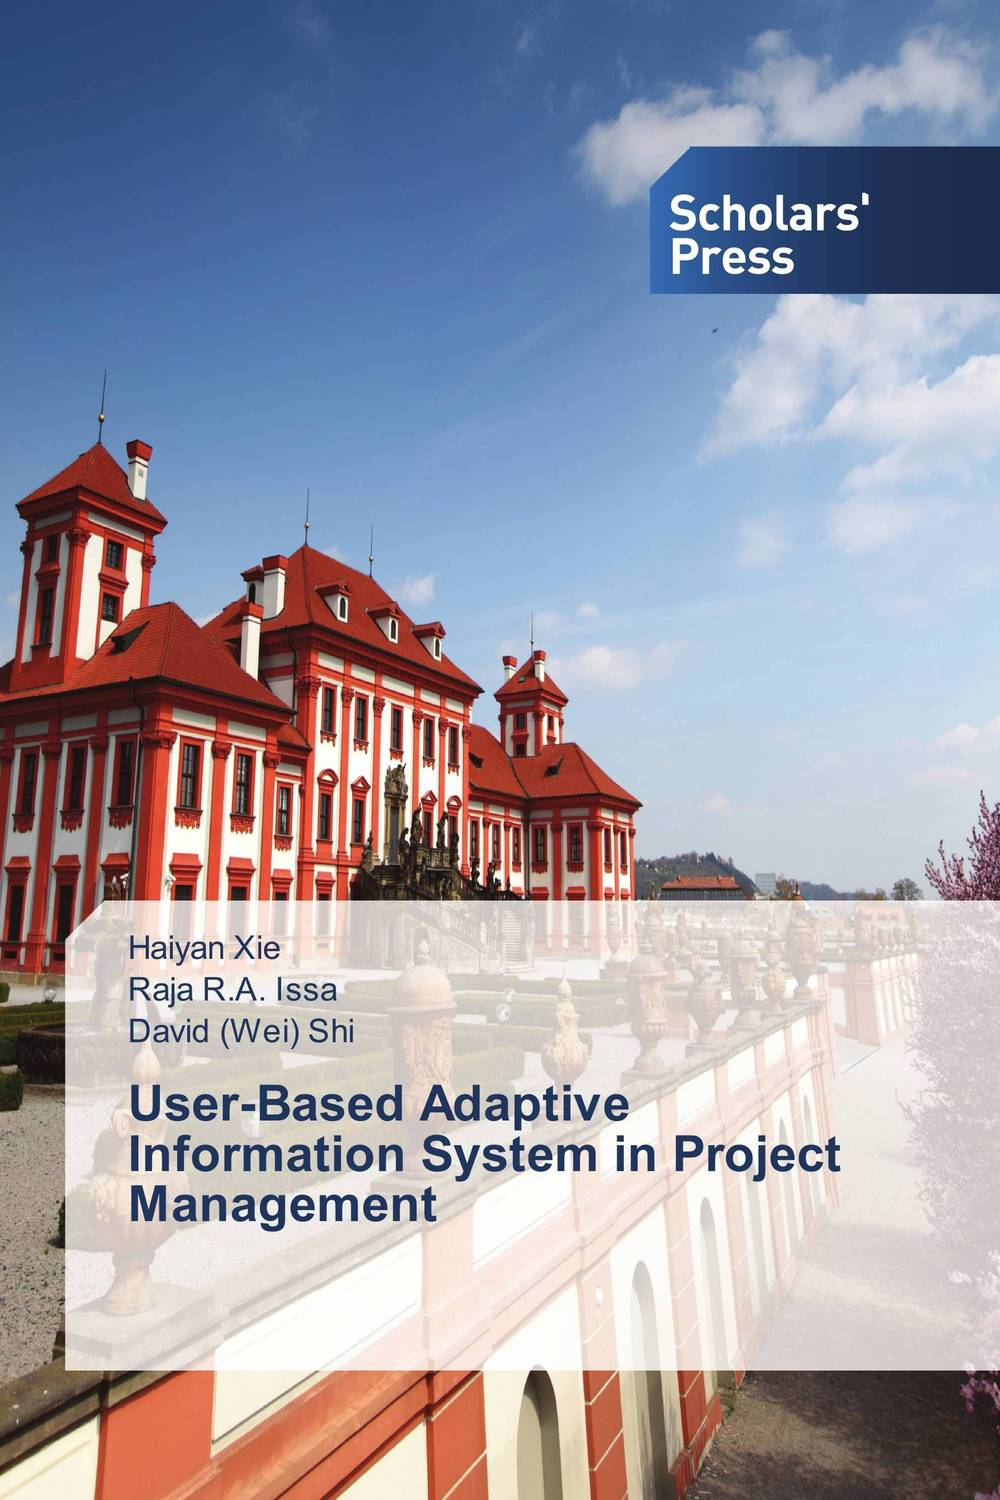 User-Based Adaptive Information System in Project Management fuzzy logic based information retrieval system